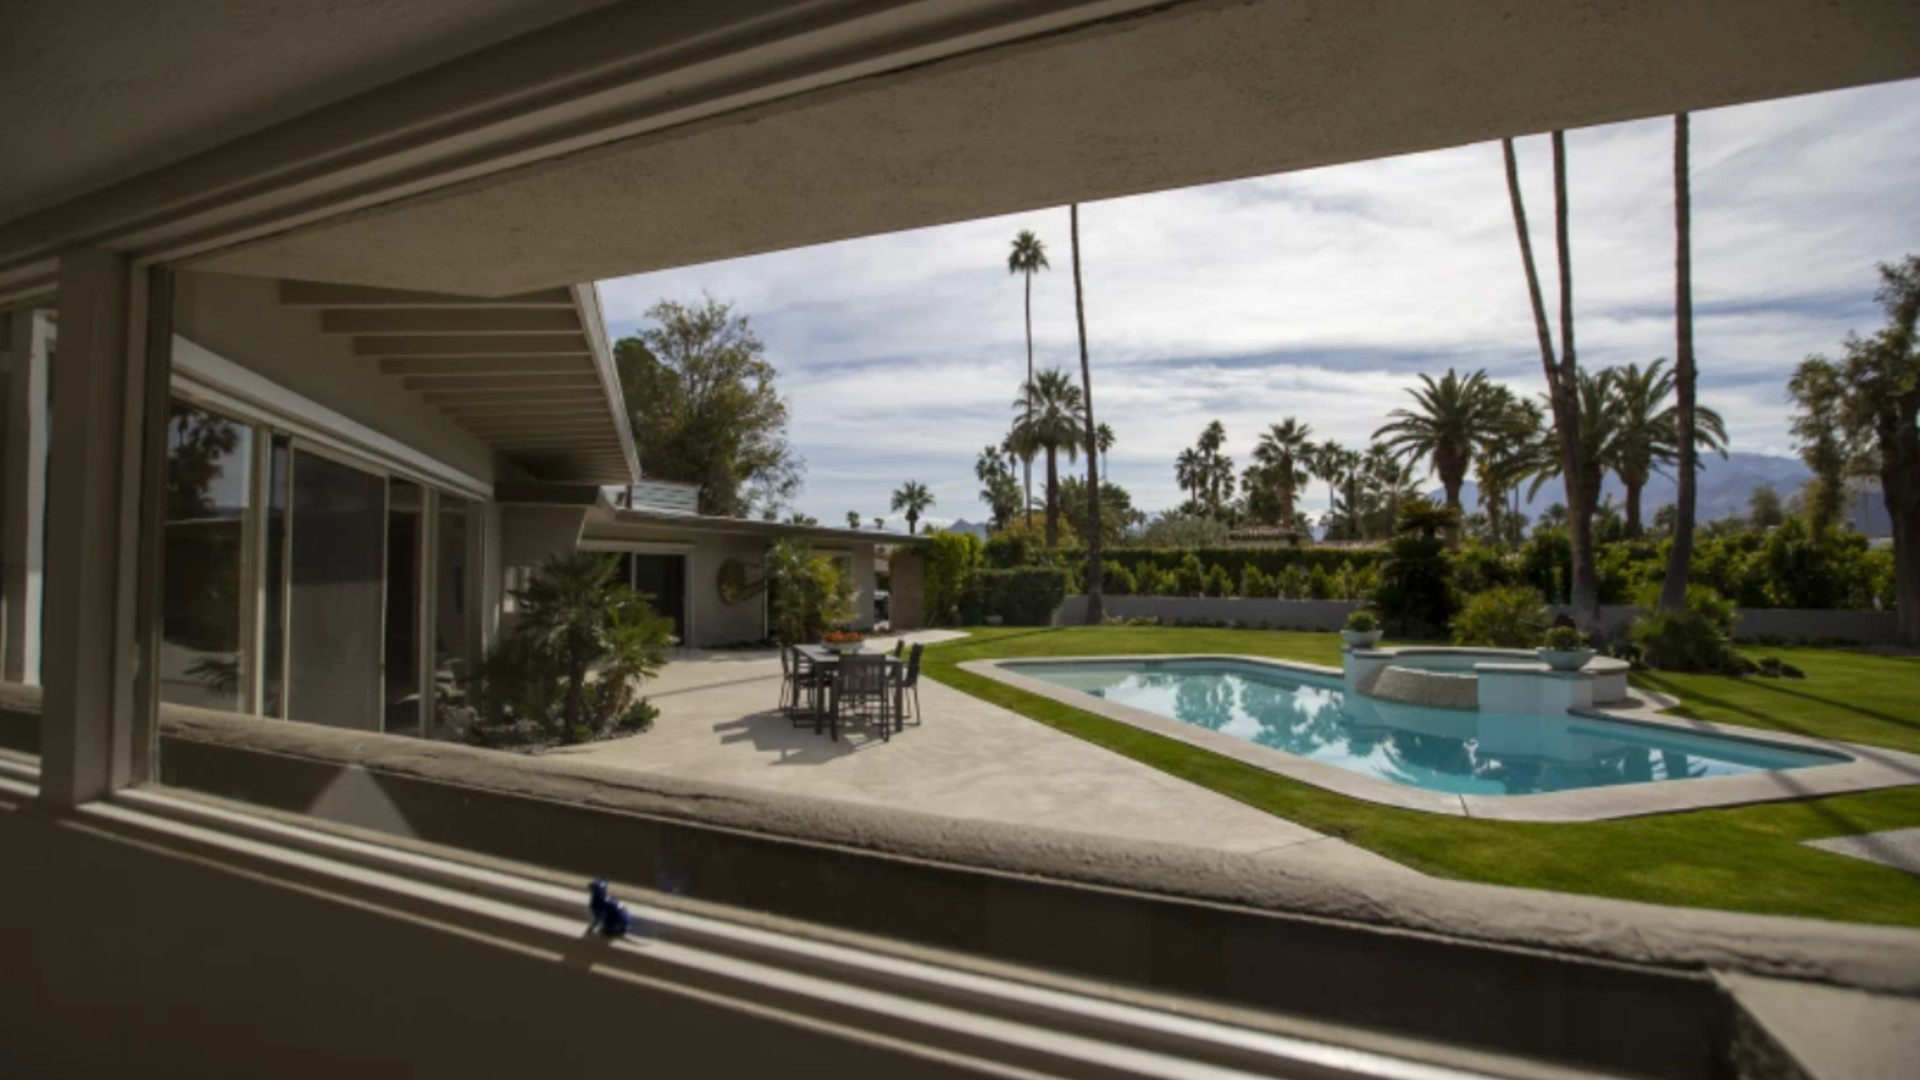 A view of the swimming pool at the Lawrence Welk estate in Palm Springs. The city matched its all-time record of 123 degrees Thursday. (Allen J. Schaben / Los Angeles Times)